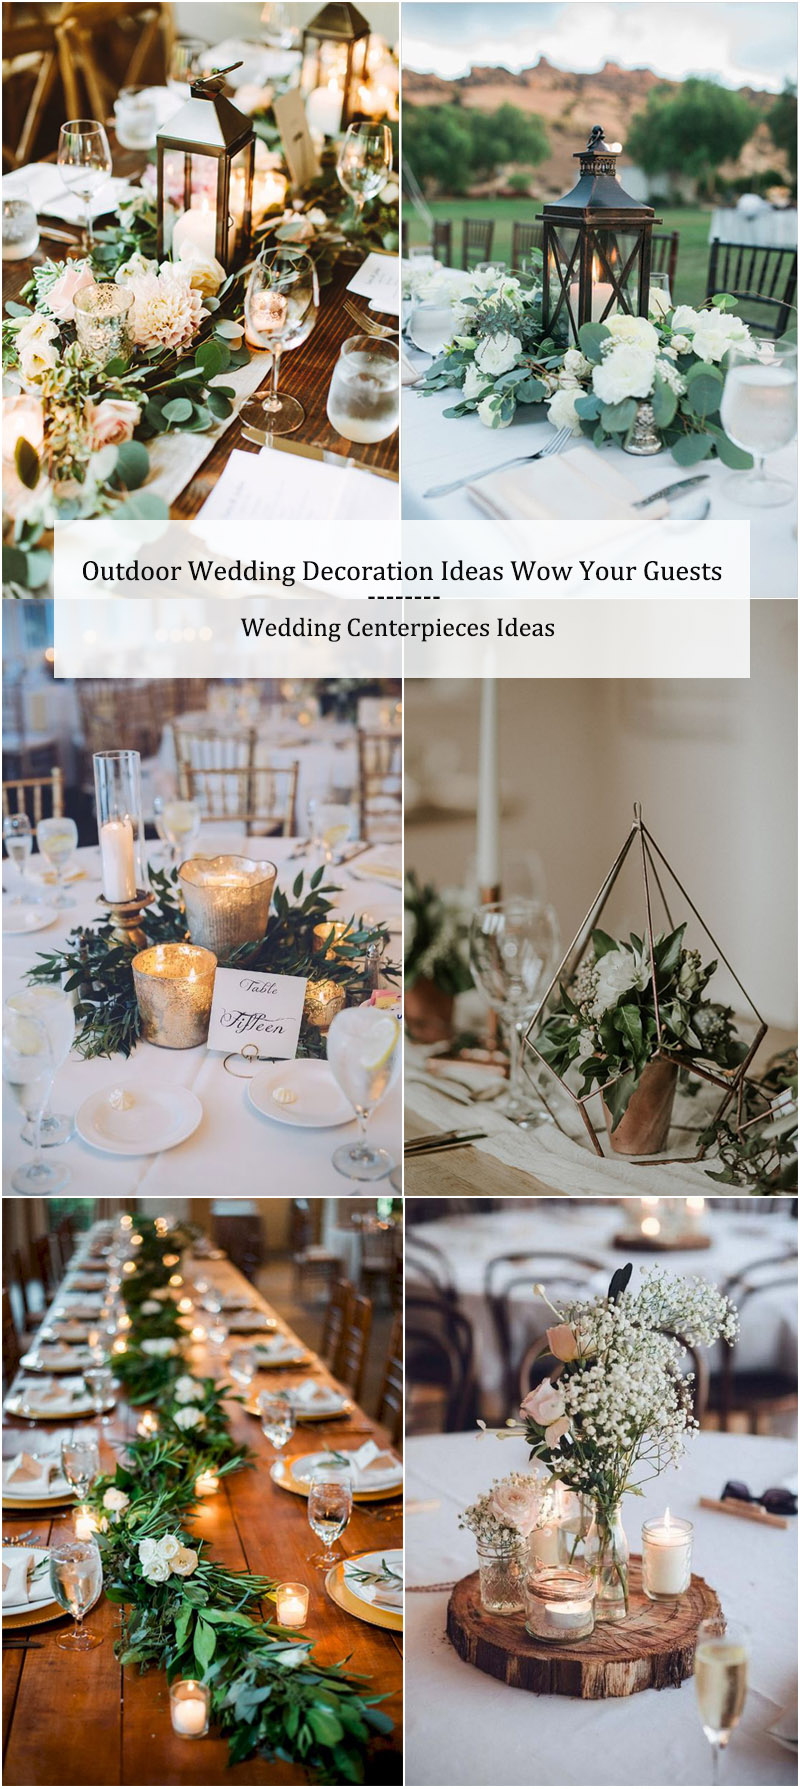 Outdoor Wedding Decoration Ideas-Wedding Centerpieces Ideas